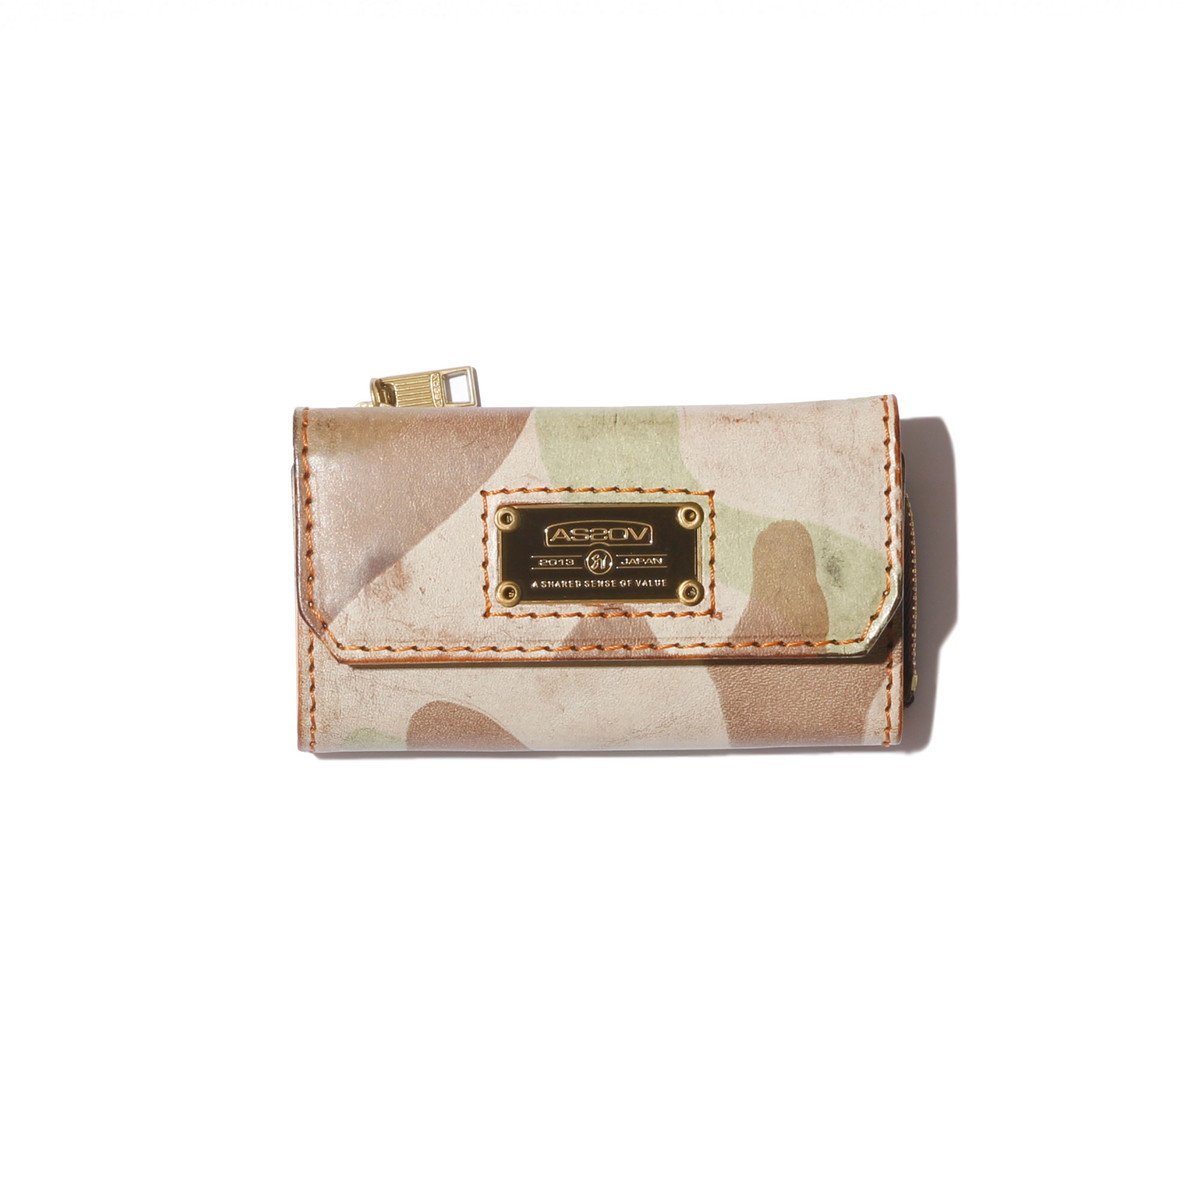 AS2OV (アッソブ) CAMOUFLAGE LEATHER WALLET KEY CASE / キーケース 101603